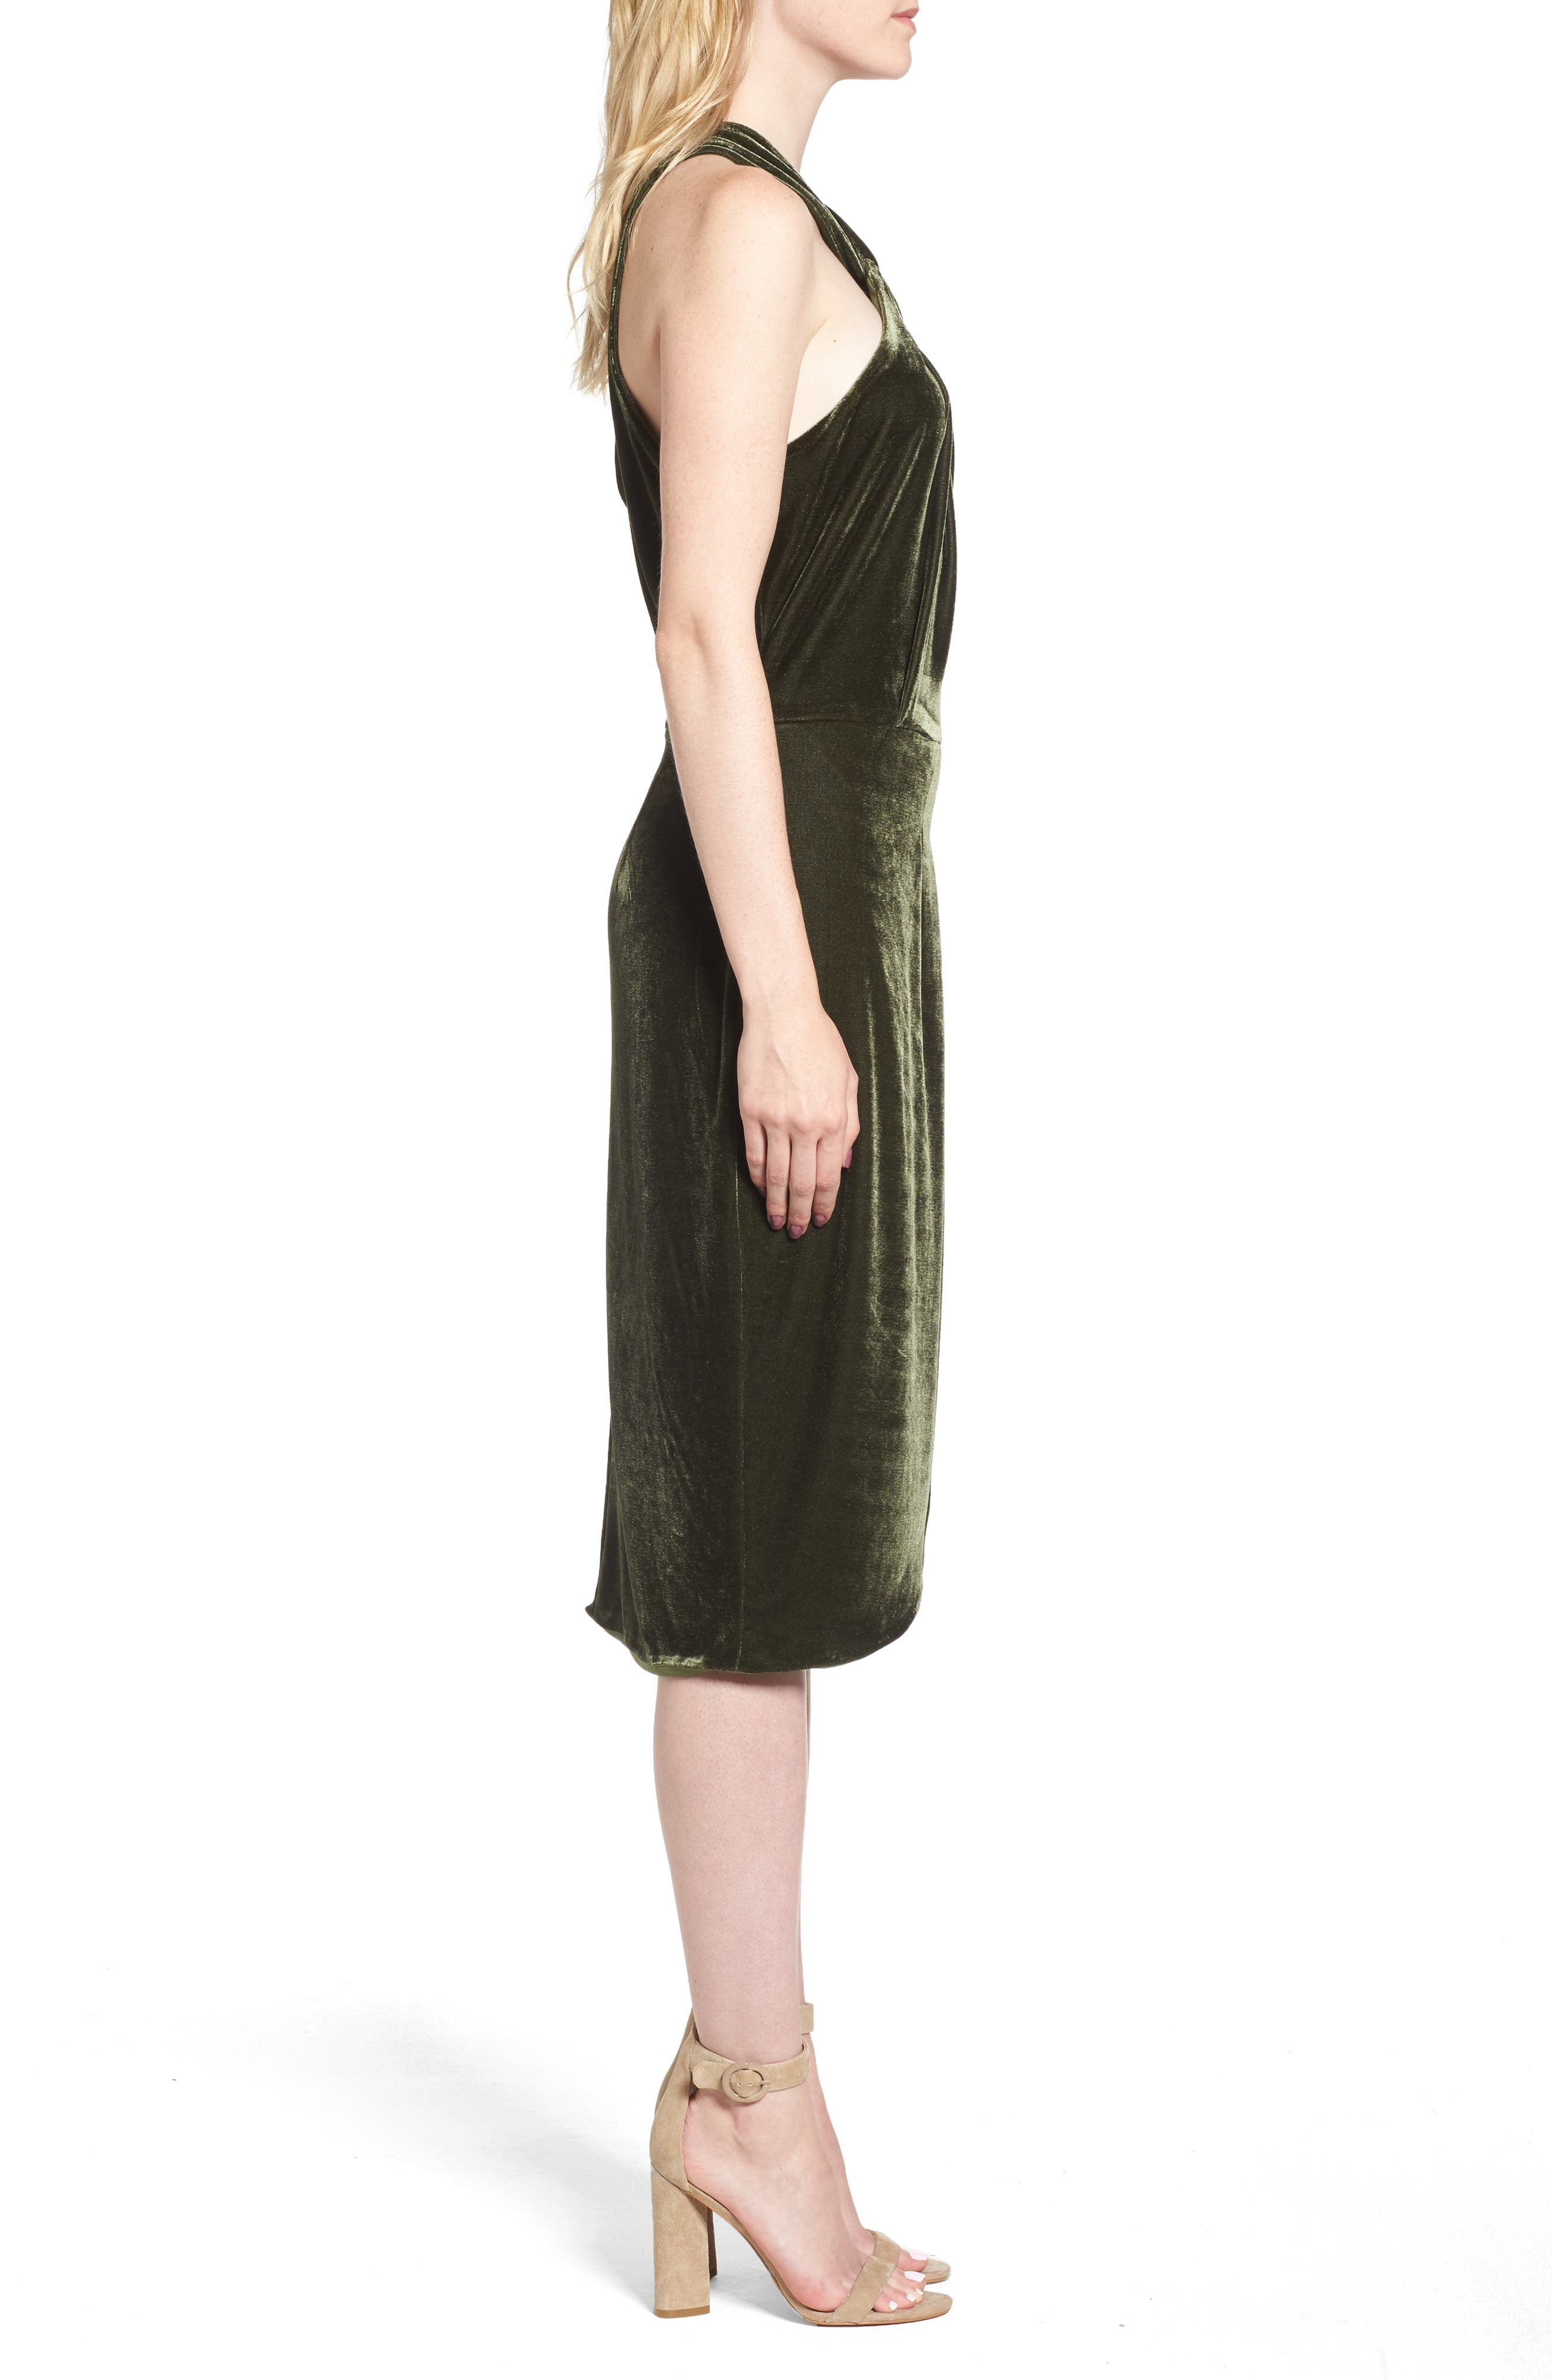 Wales Velvet Halter Dress,                             Alternate thumbnail 3, color,                             360